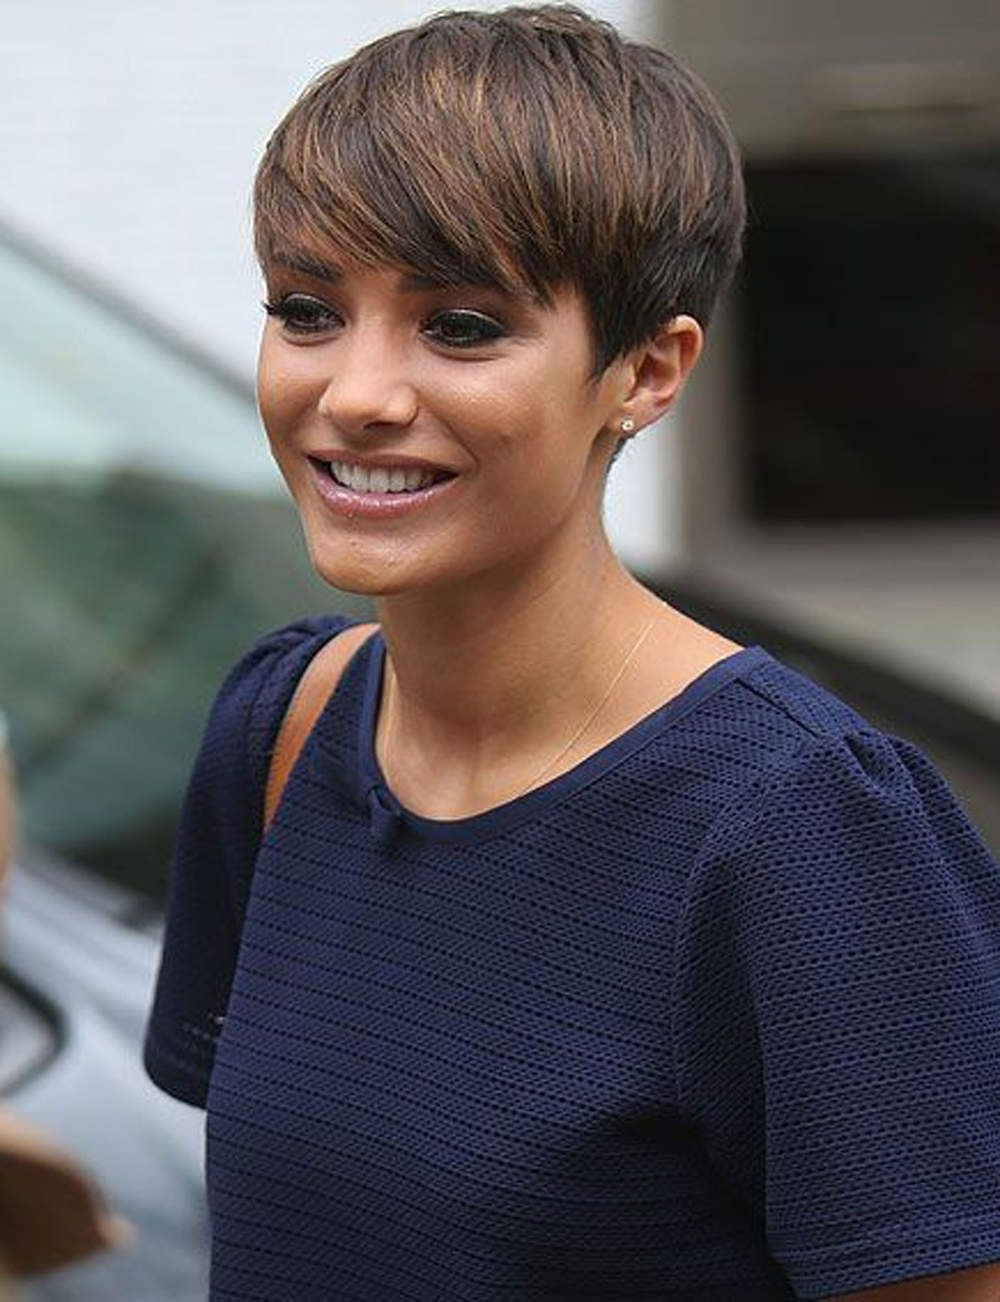 15 Best Brown Pixie Hairstyles